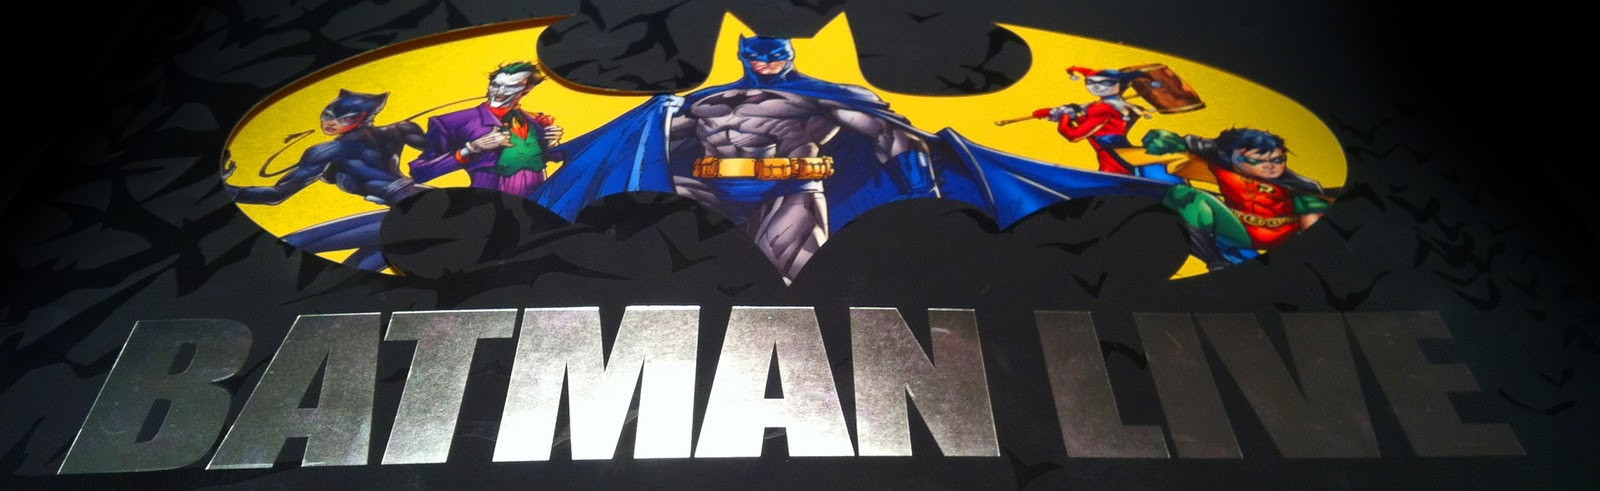 Batman Live = Awesomeness